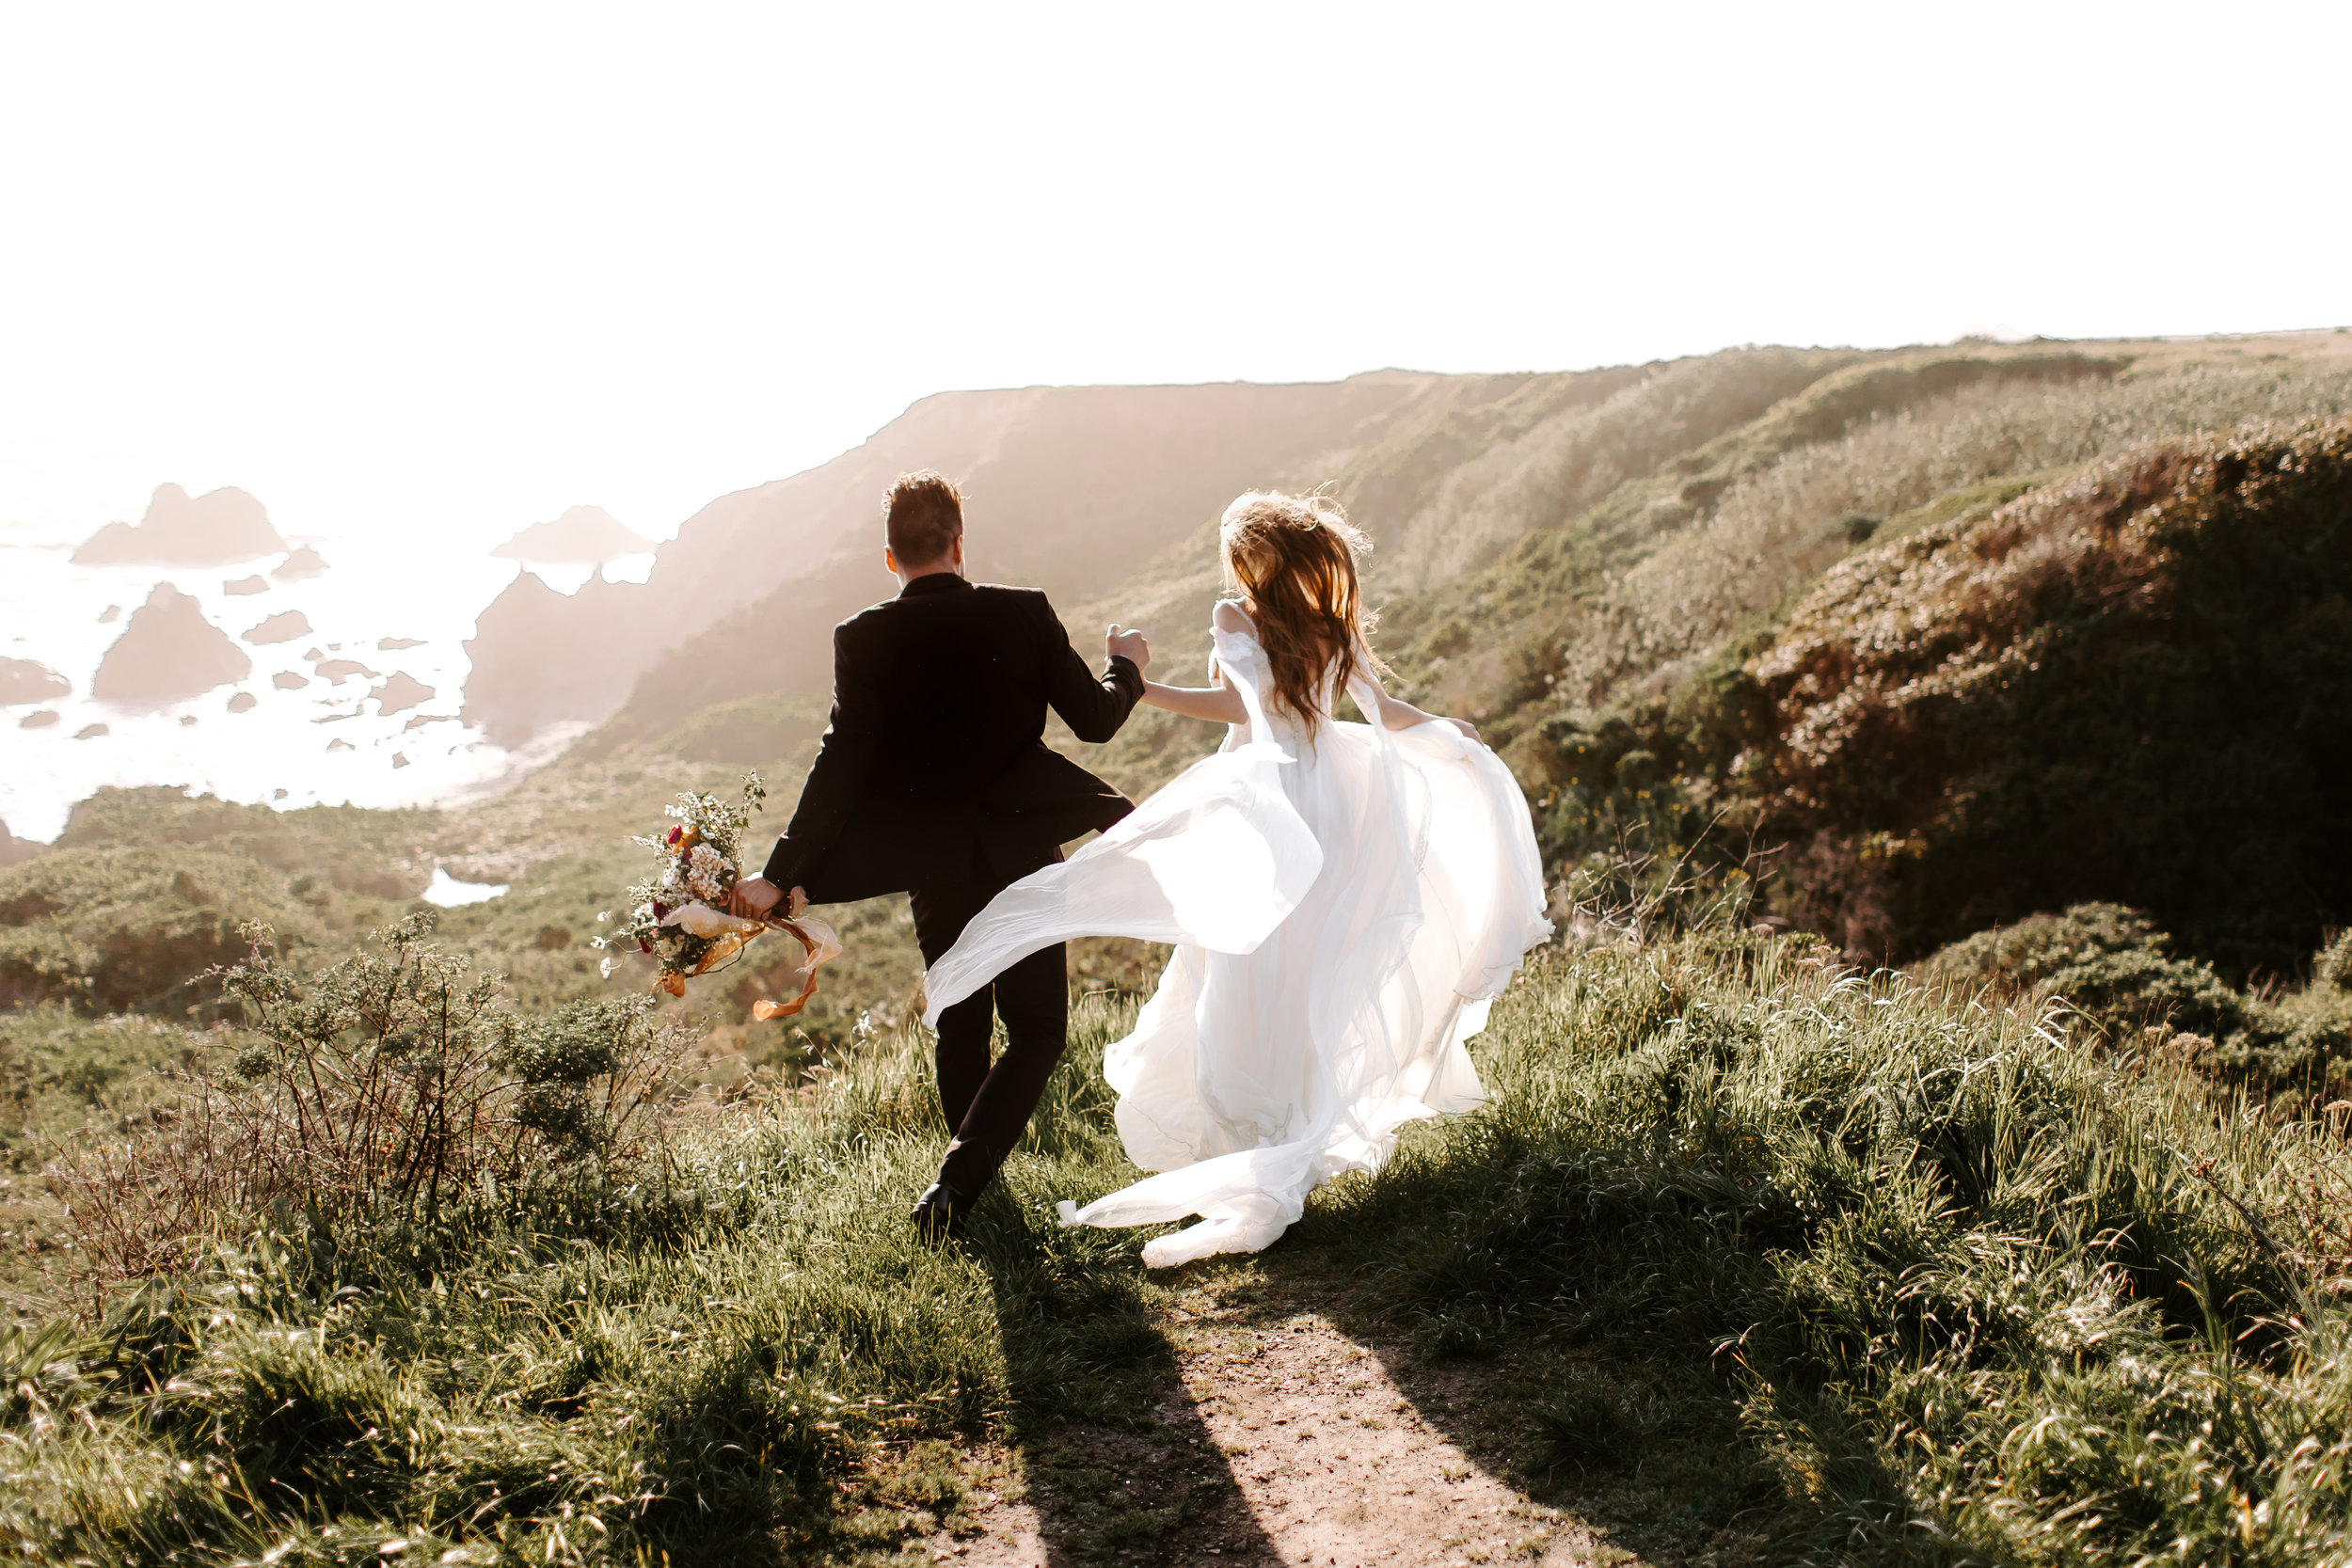 NorthernCaliforniaElopement_9.jpg